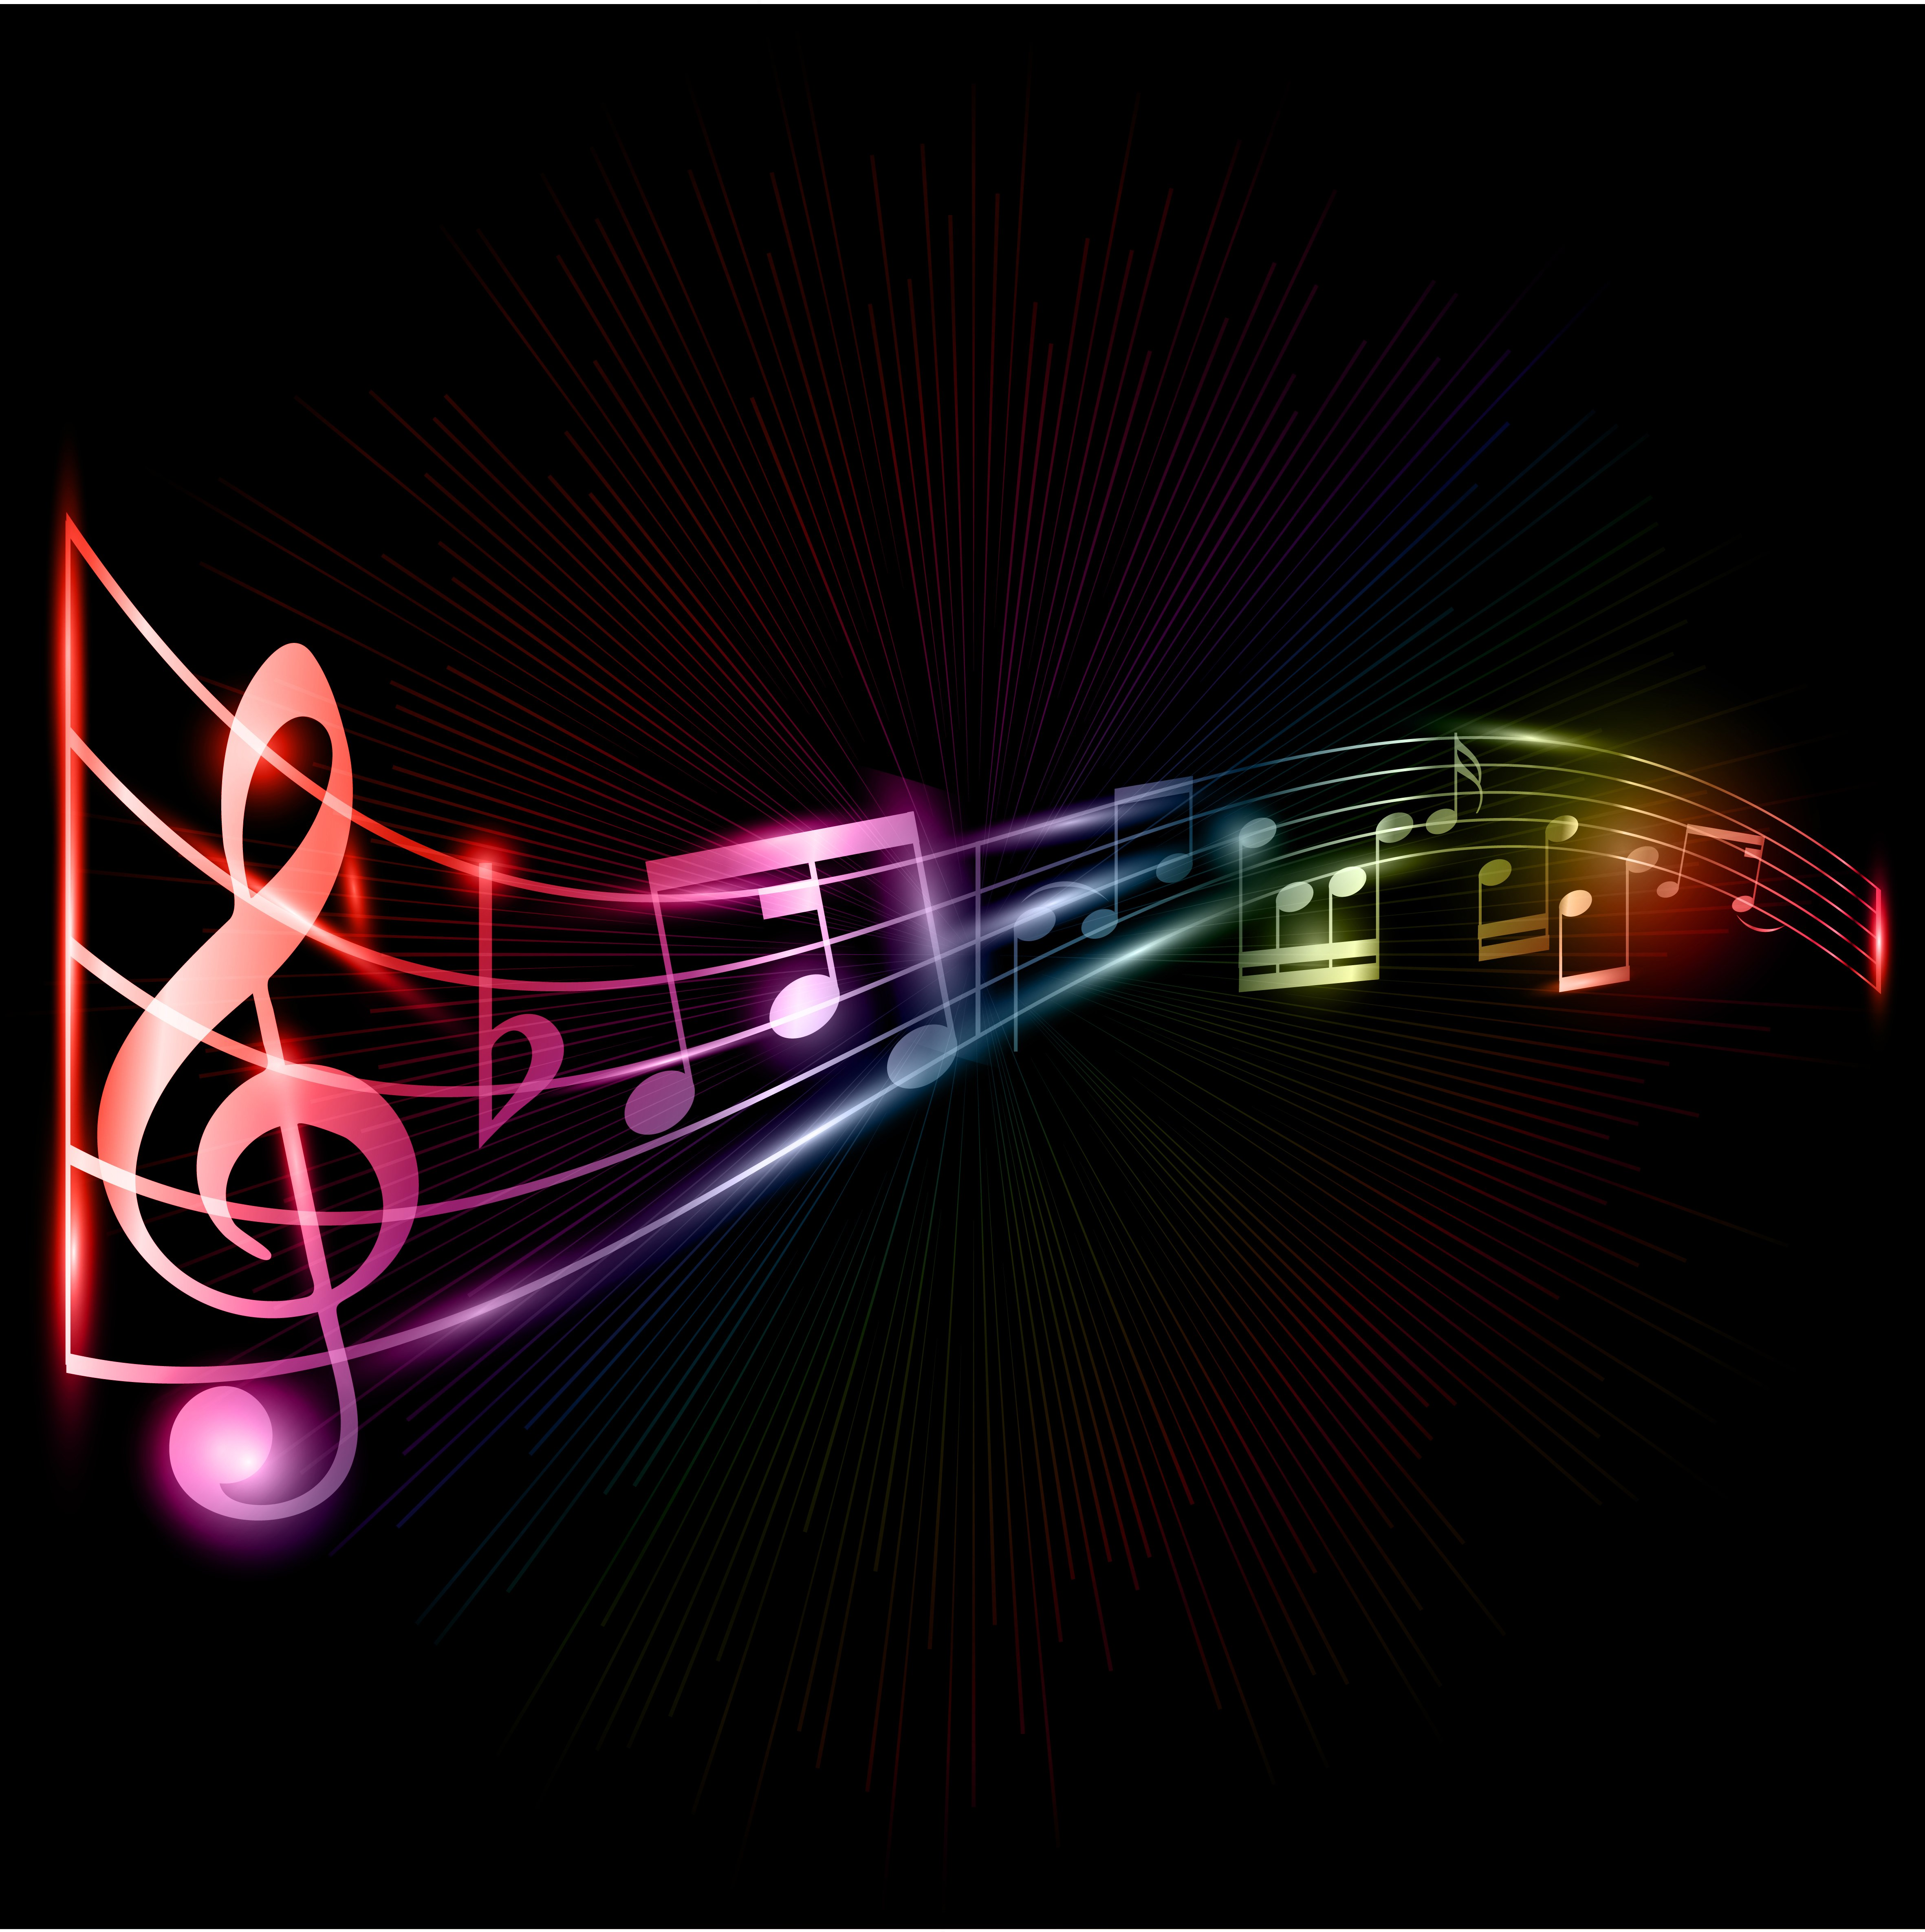 Music Notes Backgrounds For Myspace Images amp Pictures   Becuo 4724x4742